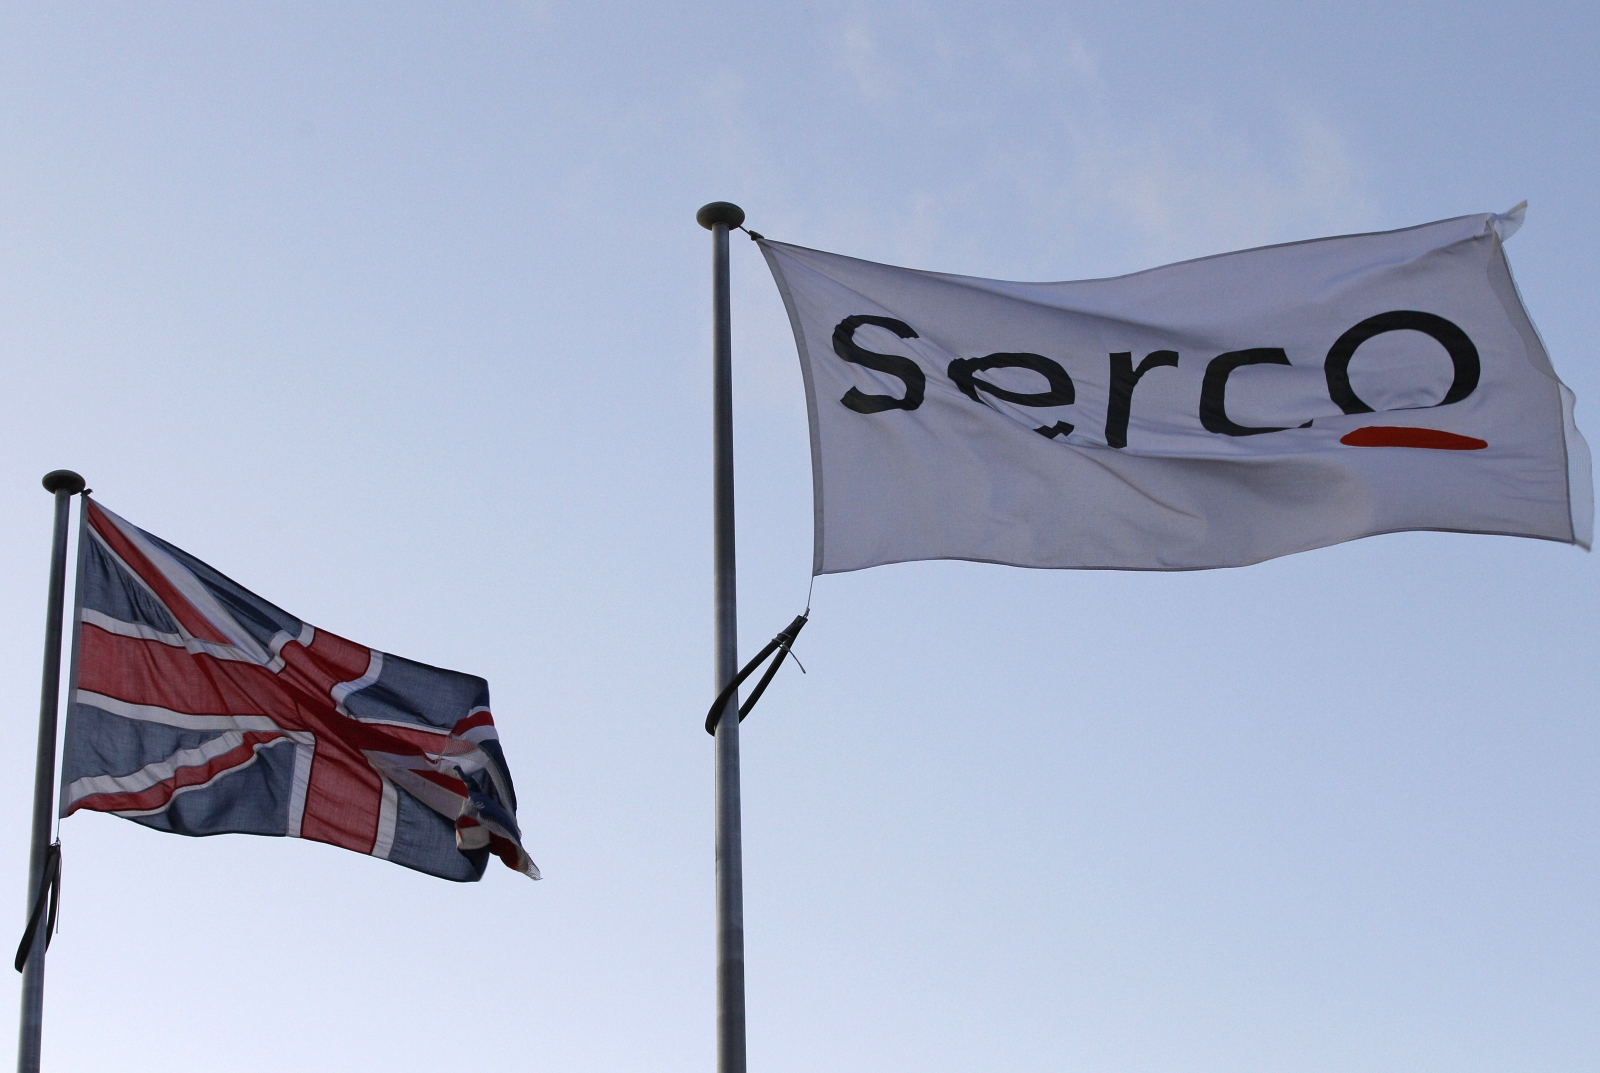 Serco logo on a flag